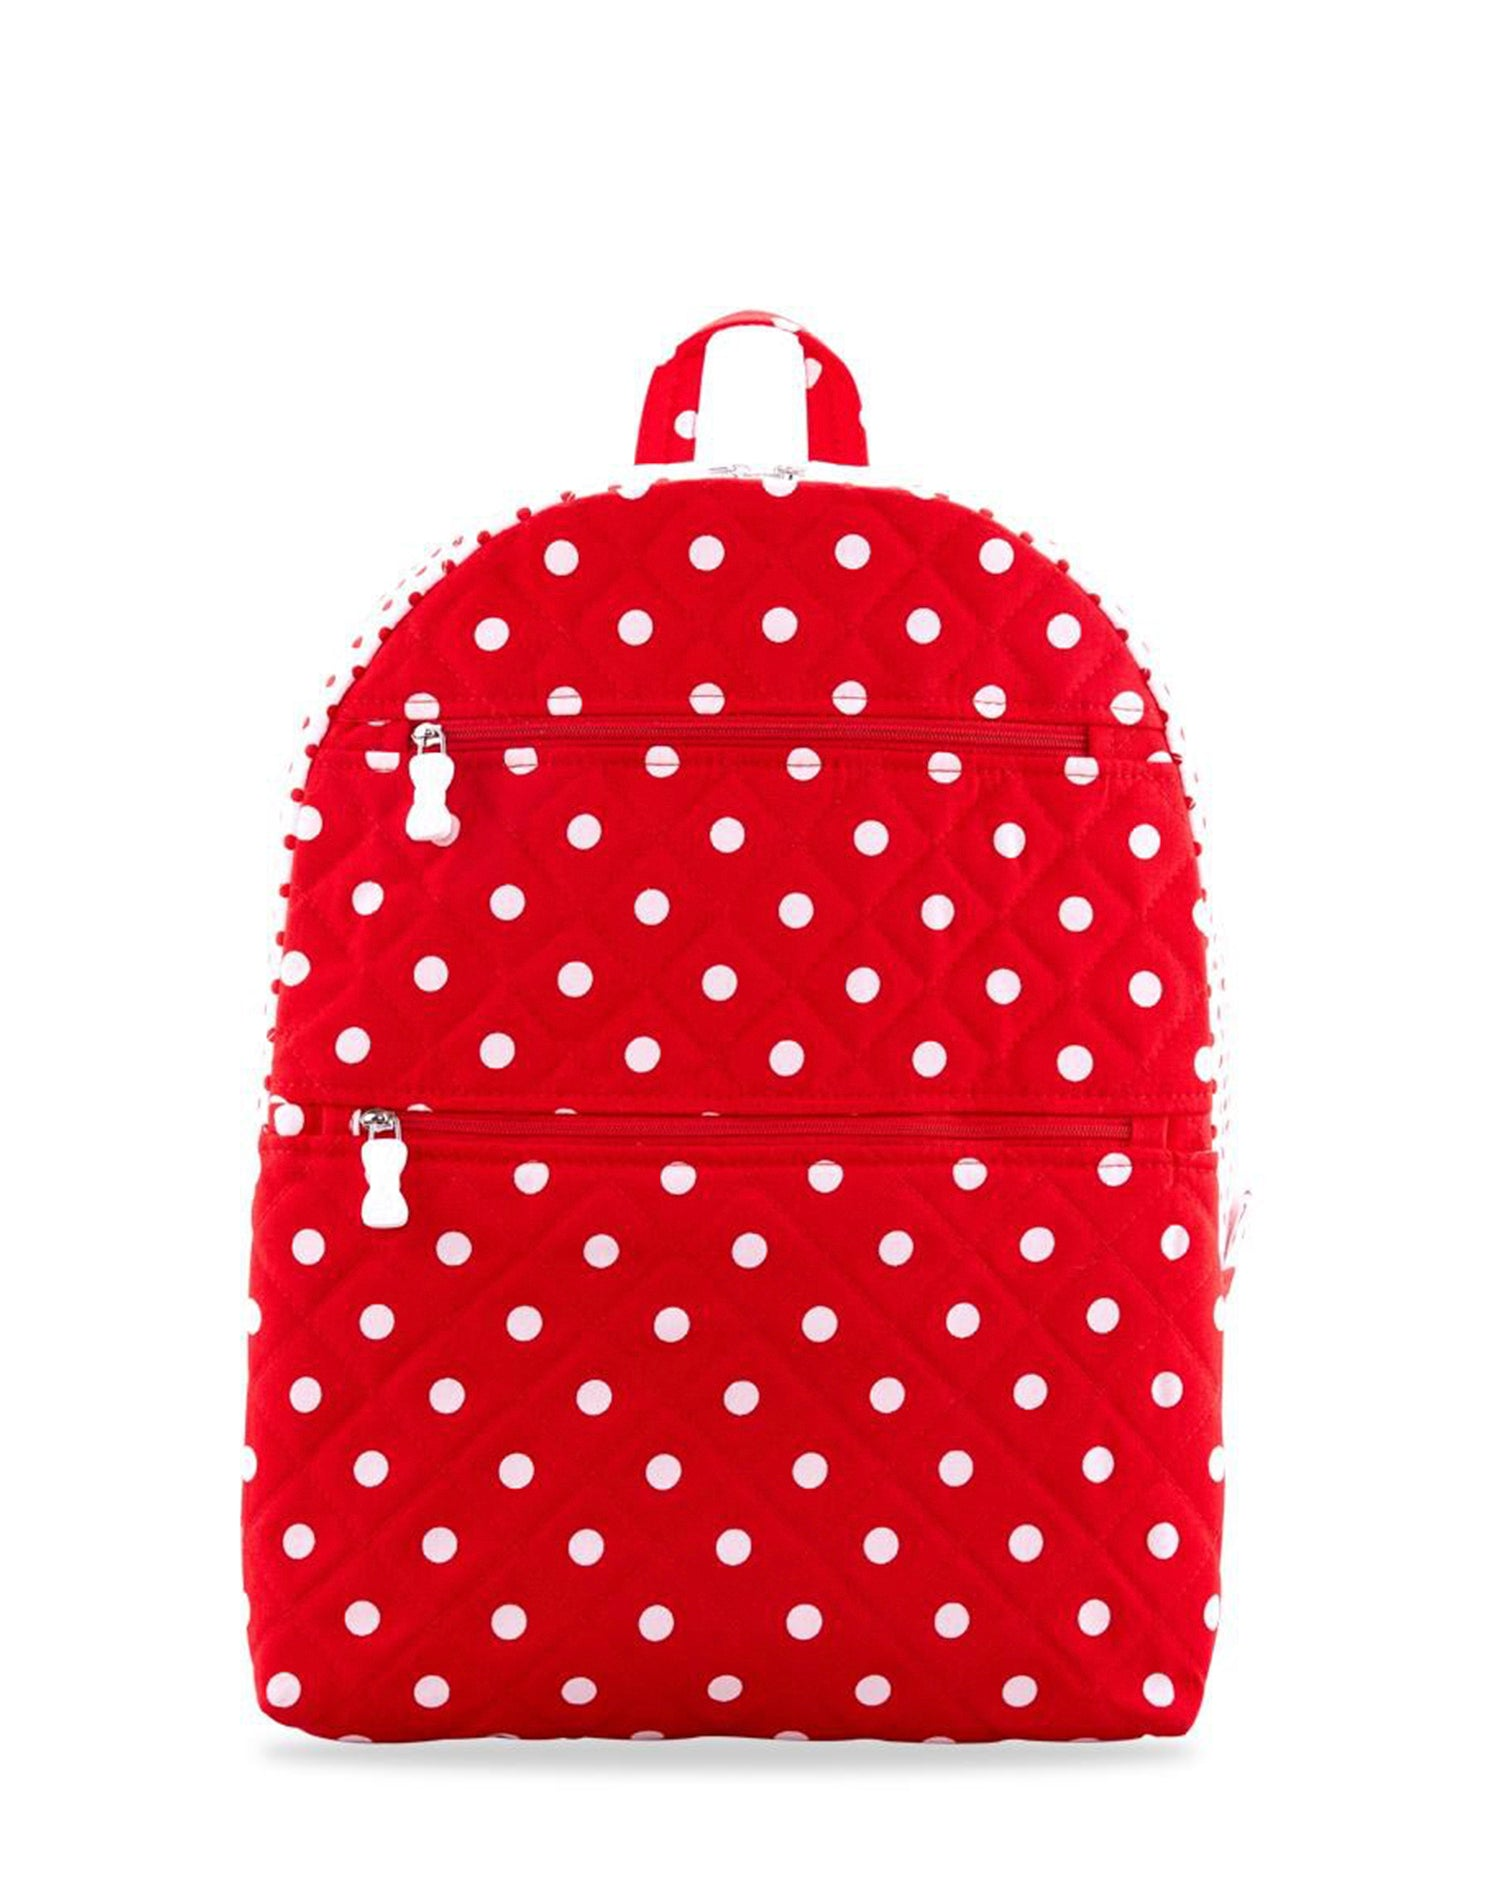 Red Double Zip Polka Dot Backpack.紅色雙拉鍊波點背囊